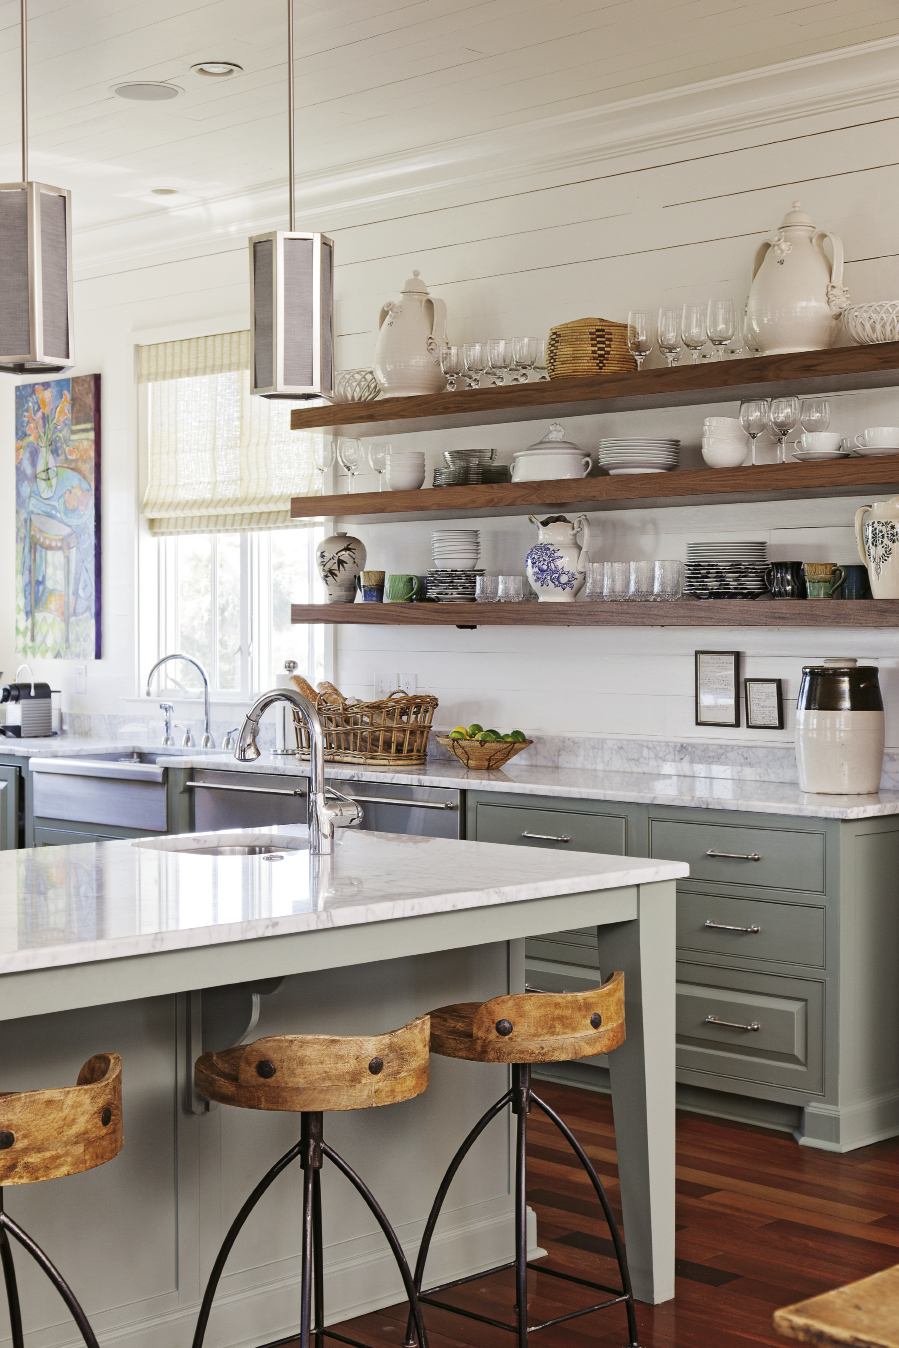 Bishop suggested replacing wall-mounted cabinets with open walnut shelving for storage with more warmth and personality.